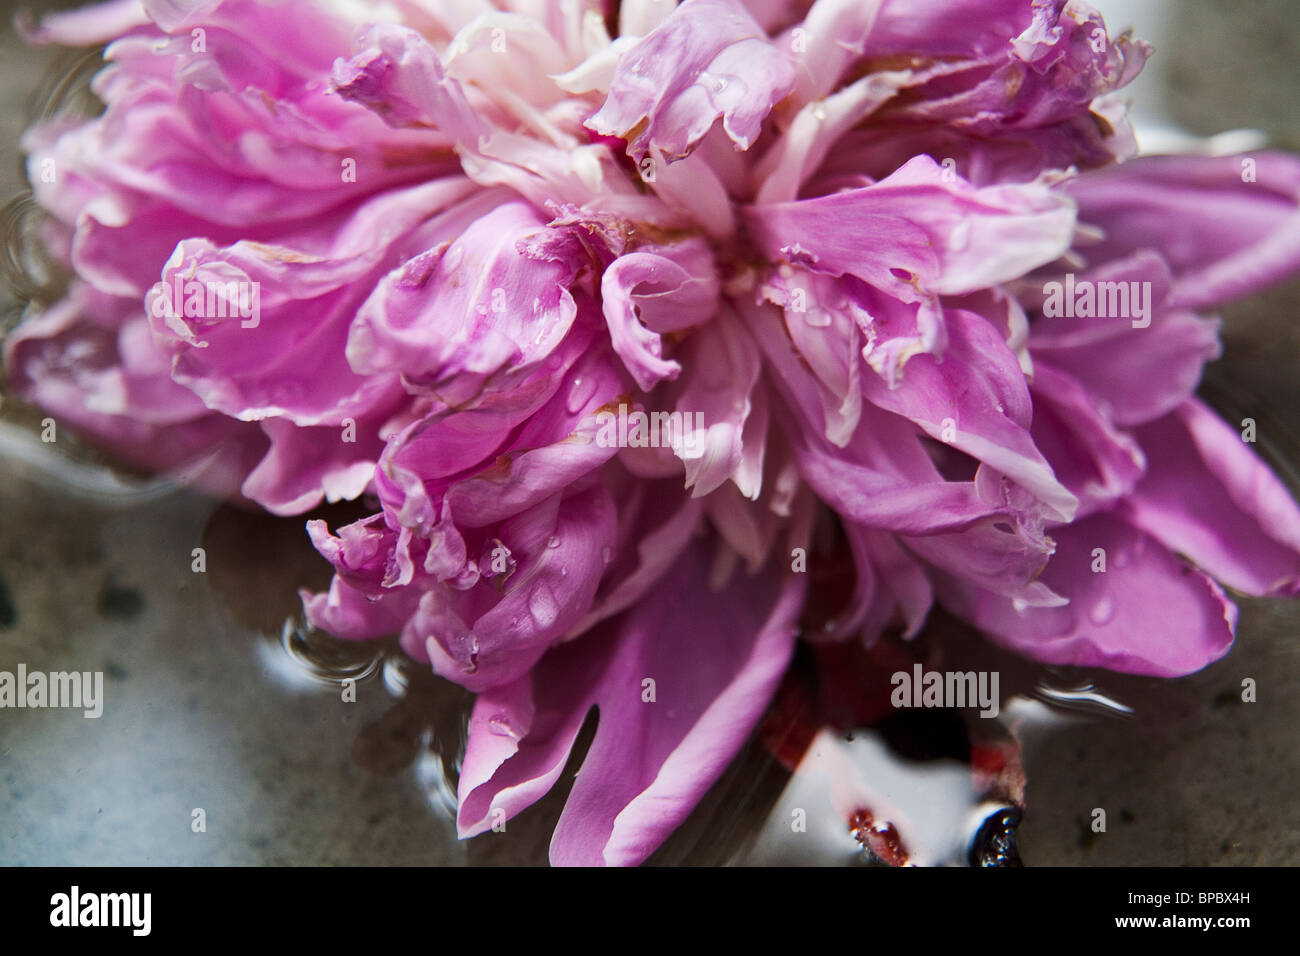 Closeup of pink peony in water. Stock Photo